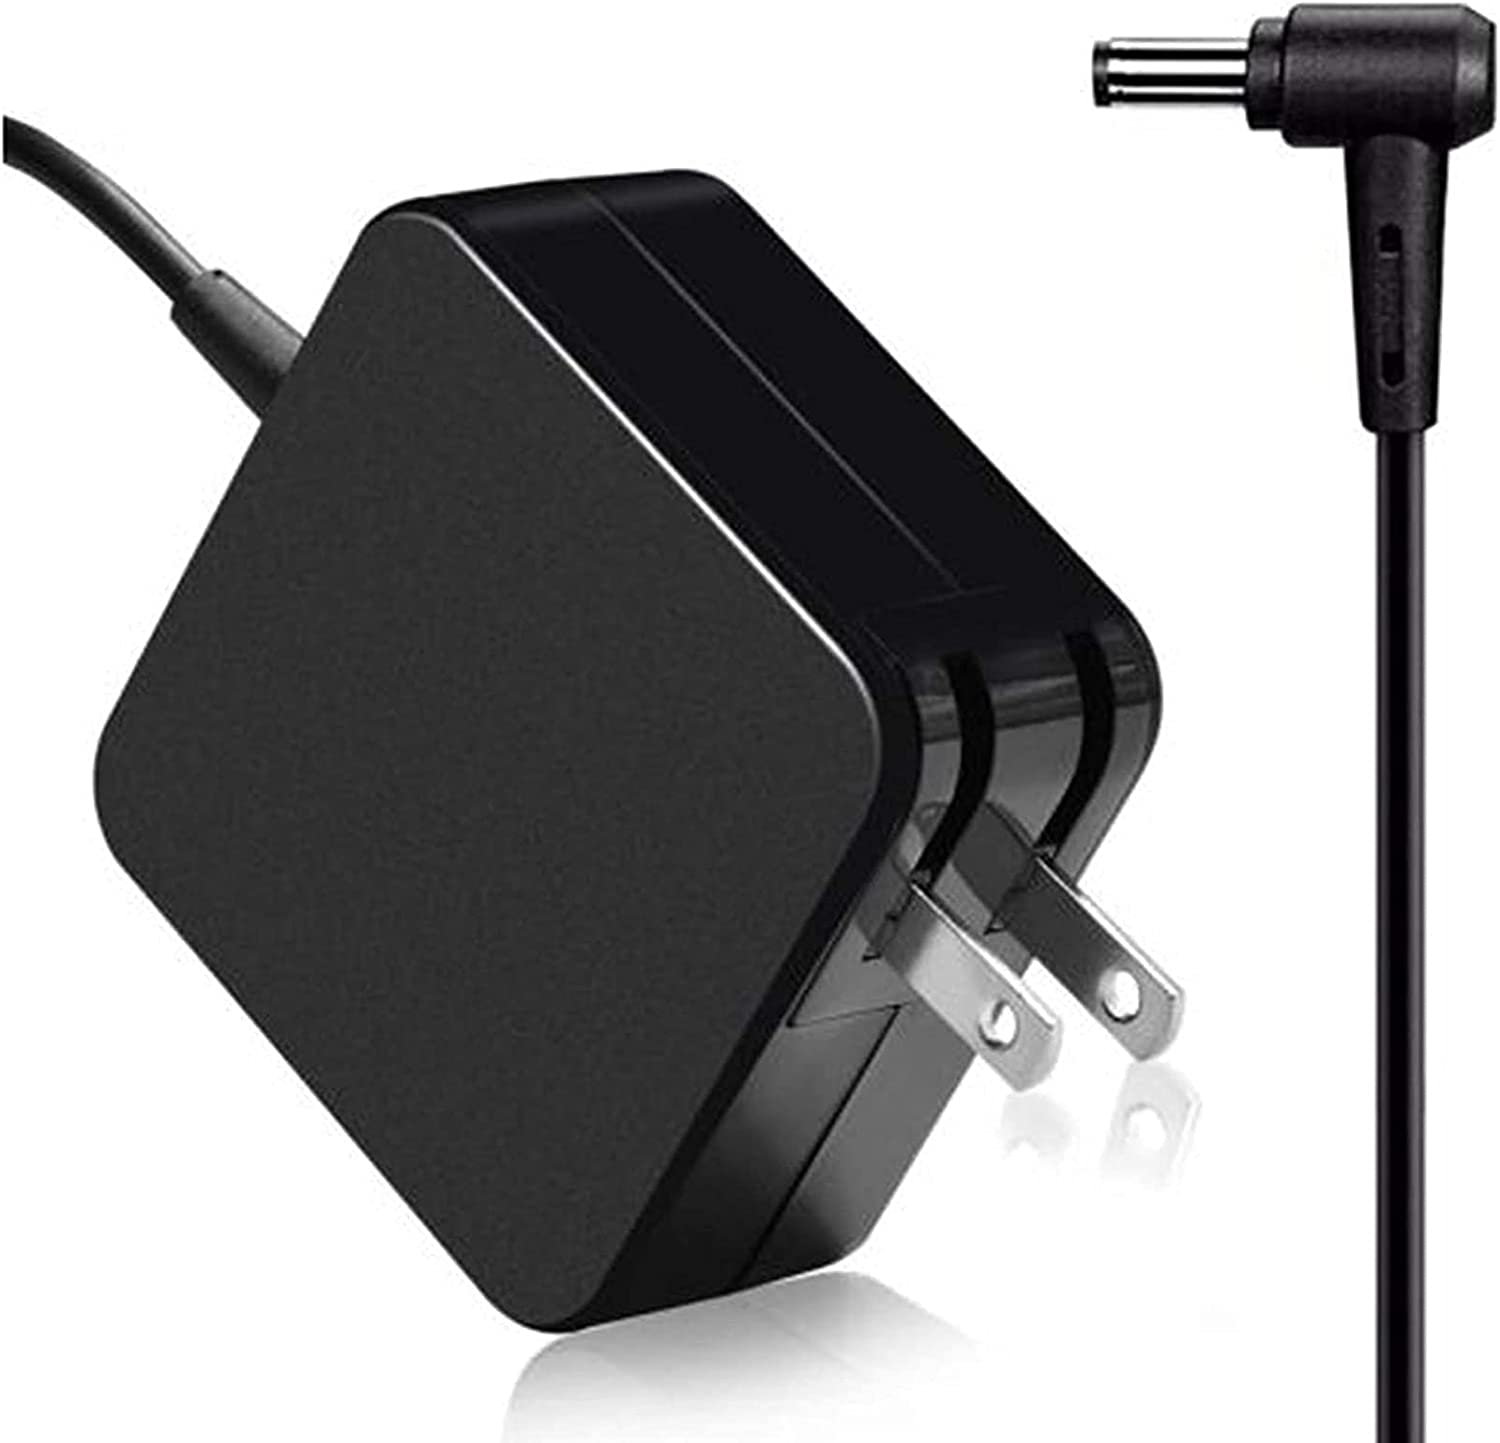 45W Laptop Charger Fit for Lenovo IdeaPad 320 330 330s 1 310 Courier Translated shipping free 100